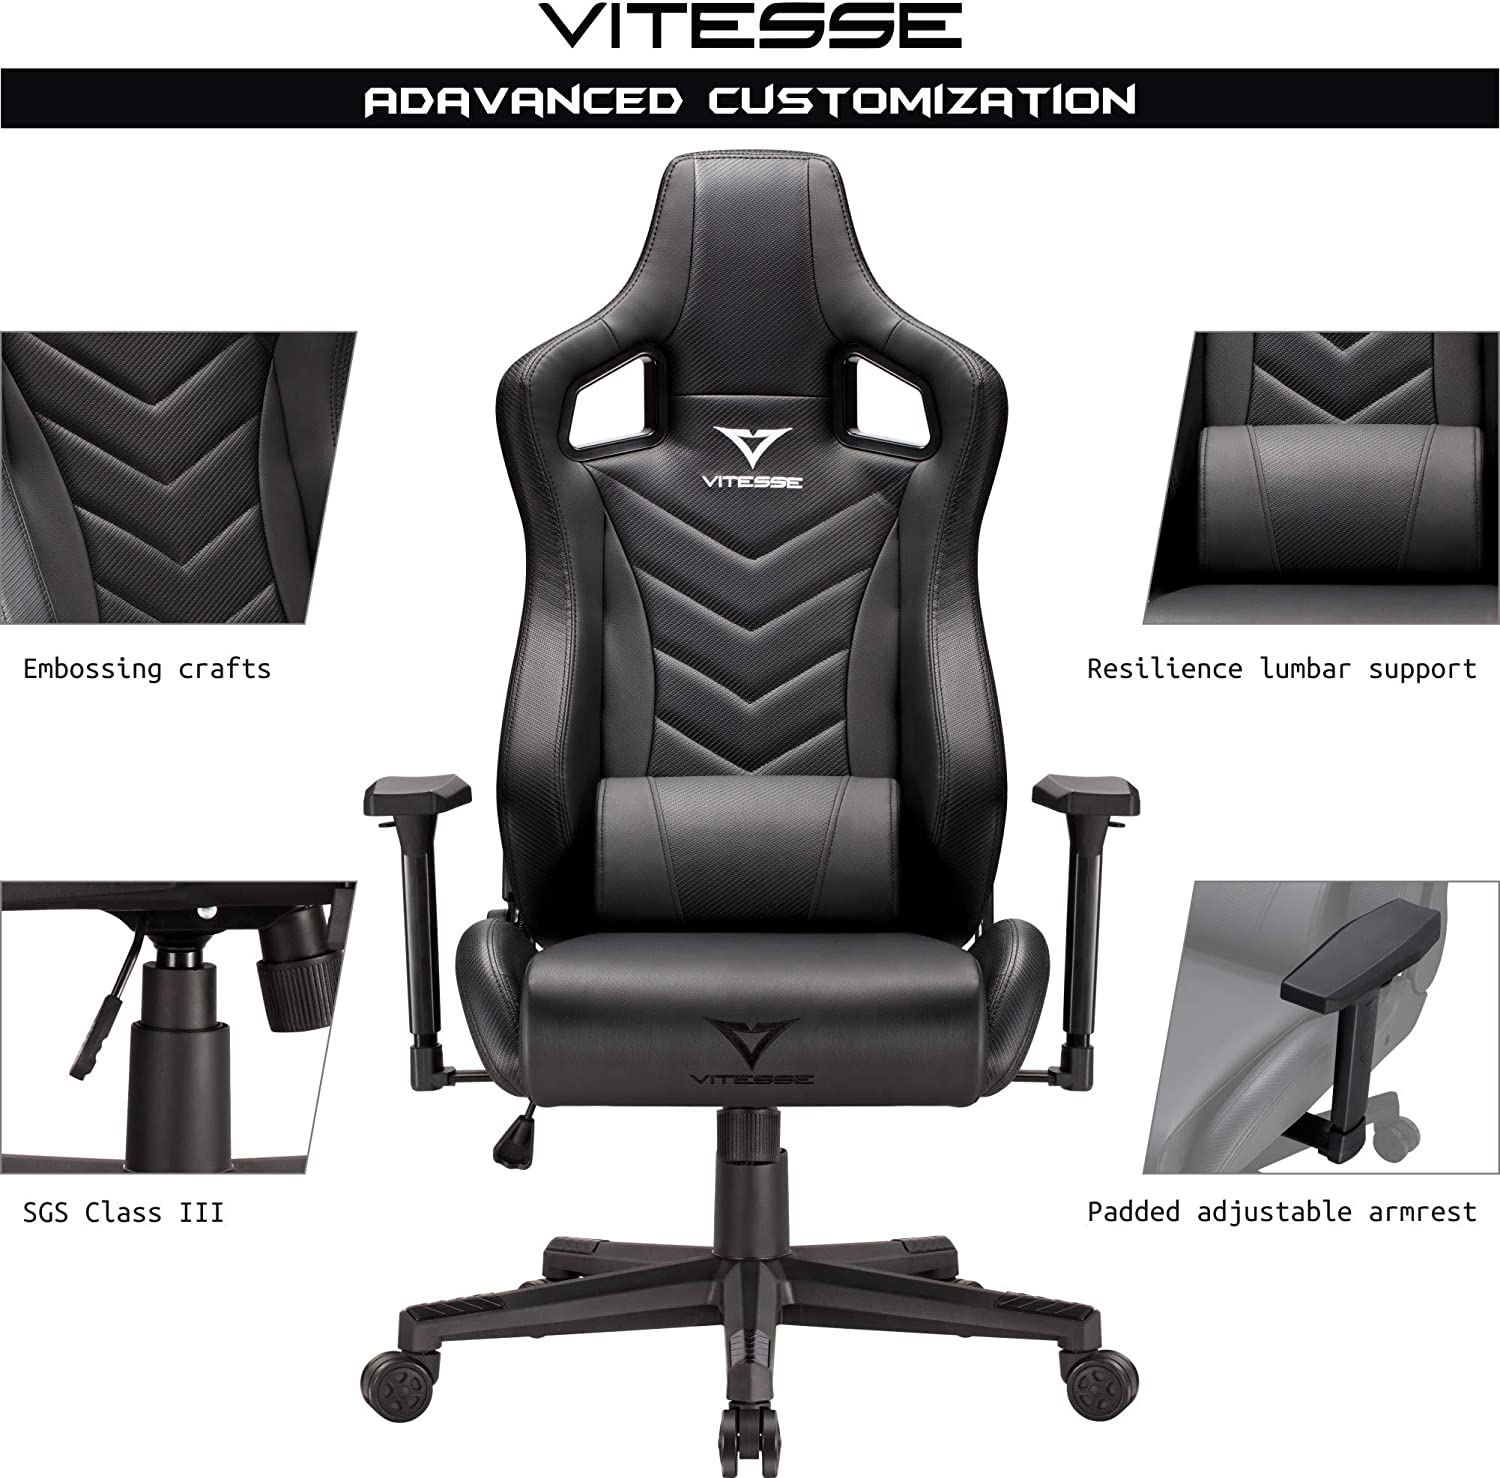 Sillas Gaming Black Ergonomic Computer Desk Chair Racing Style Comfortable Chair High Back Swivel Executive Leather Chair With Lumbar Support And Headrest Vitesse Gaming Chair Furniture Home Office Chairs